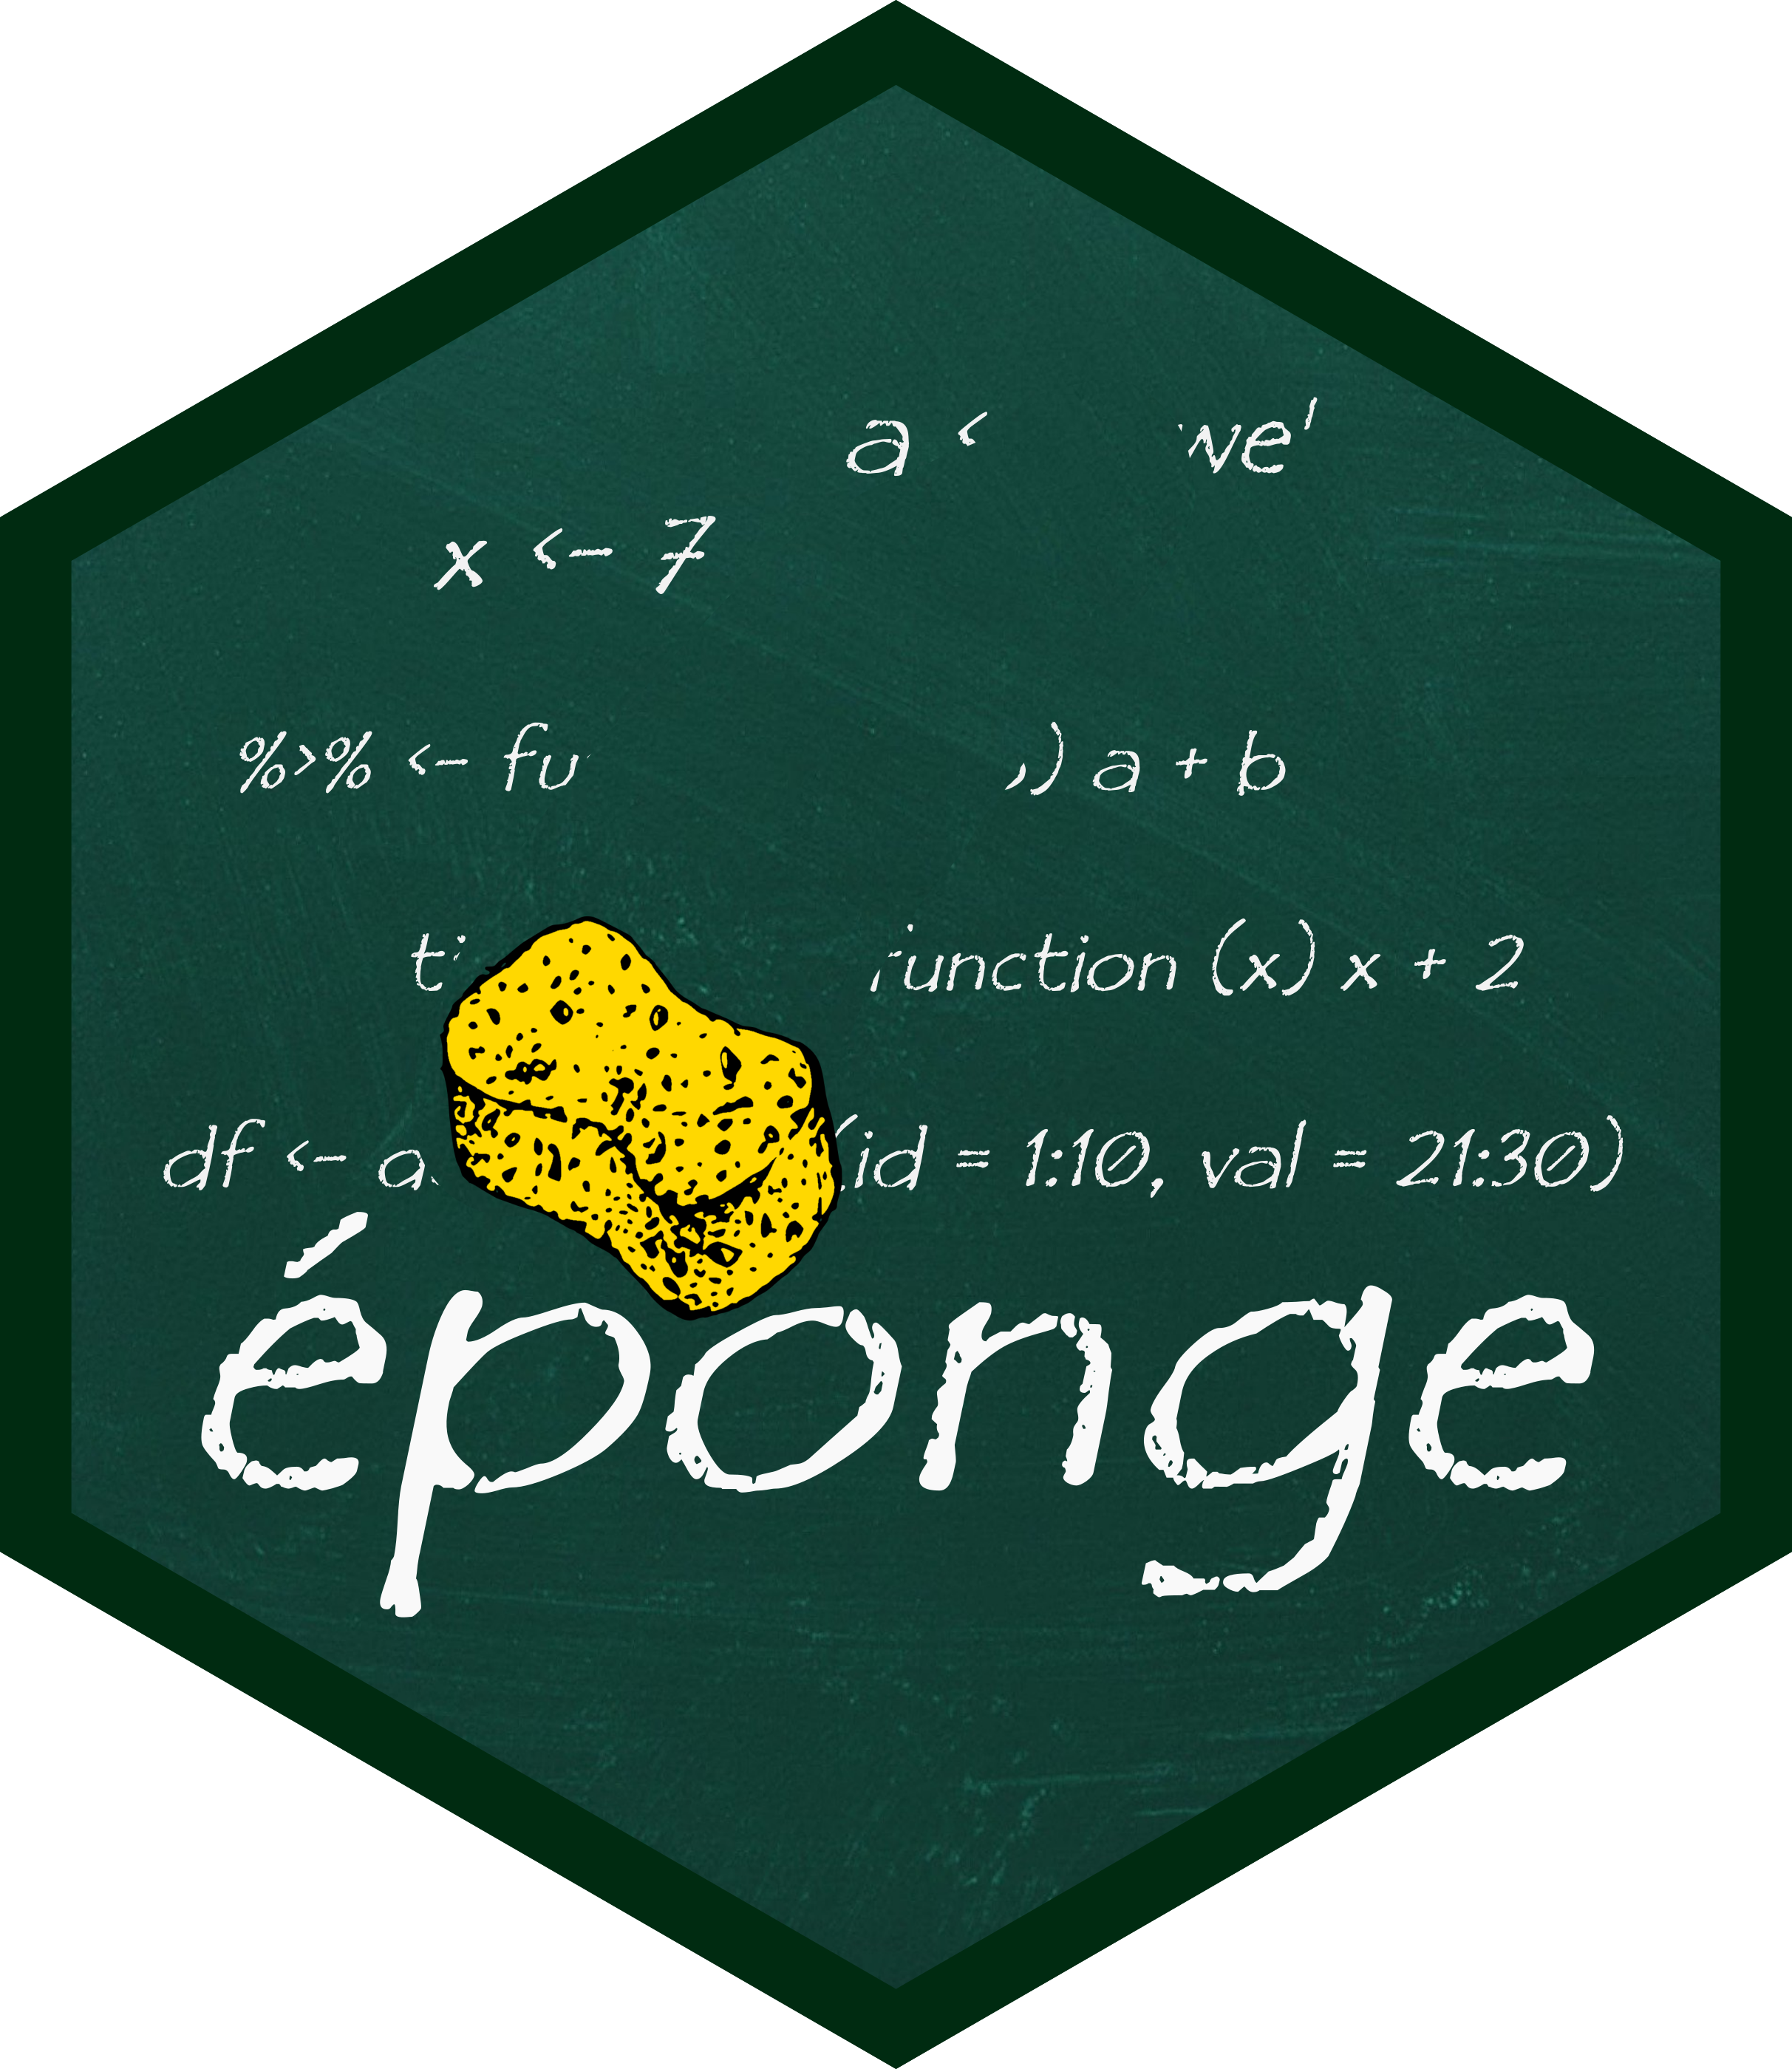 eponge: Keep Your Environment Clean